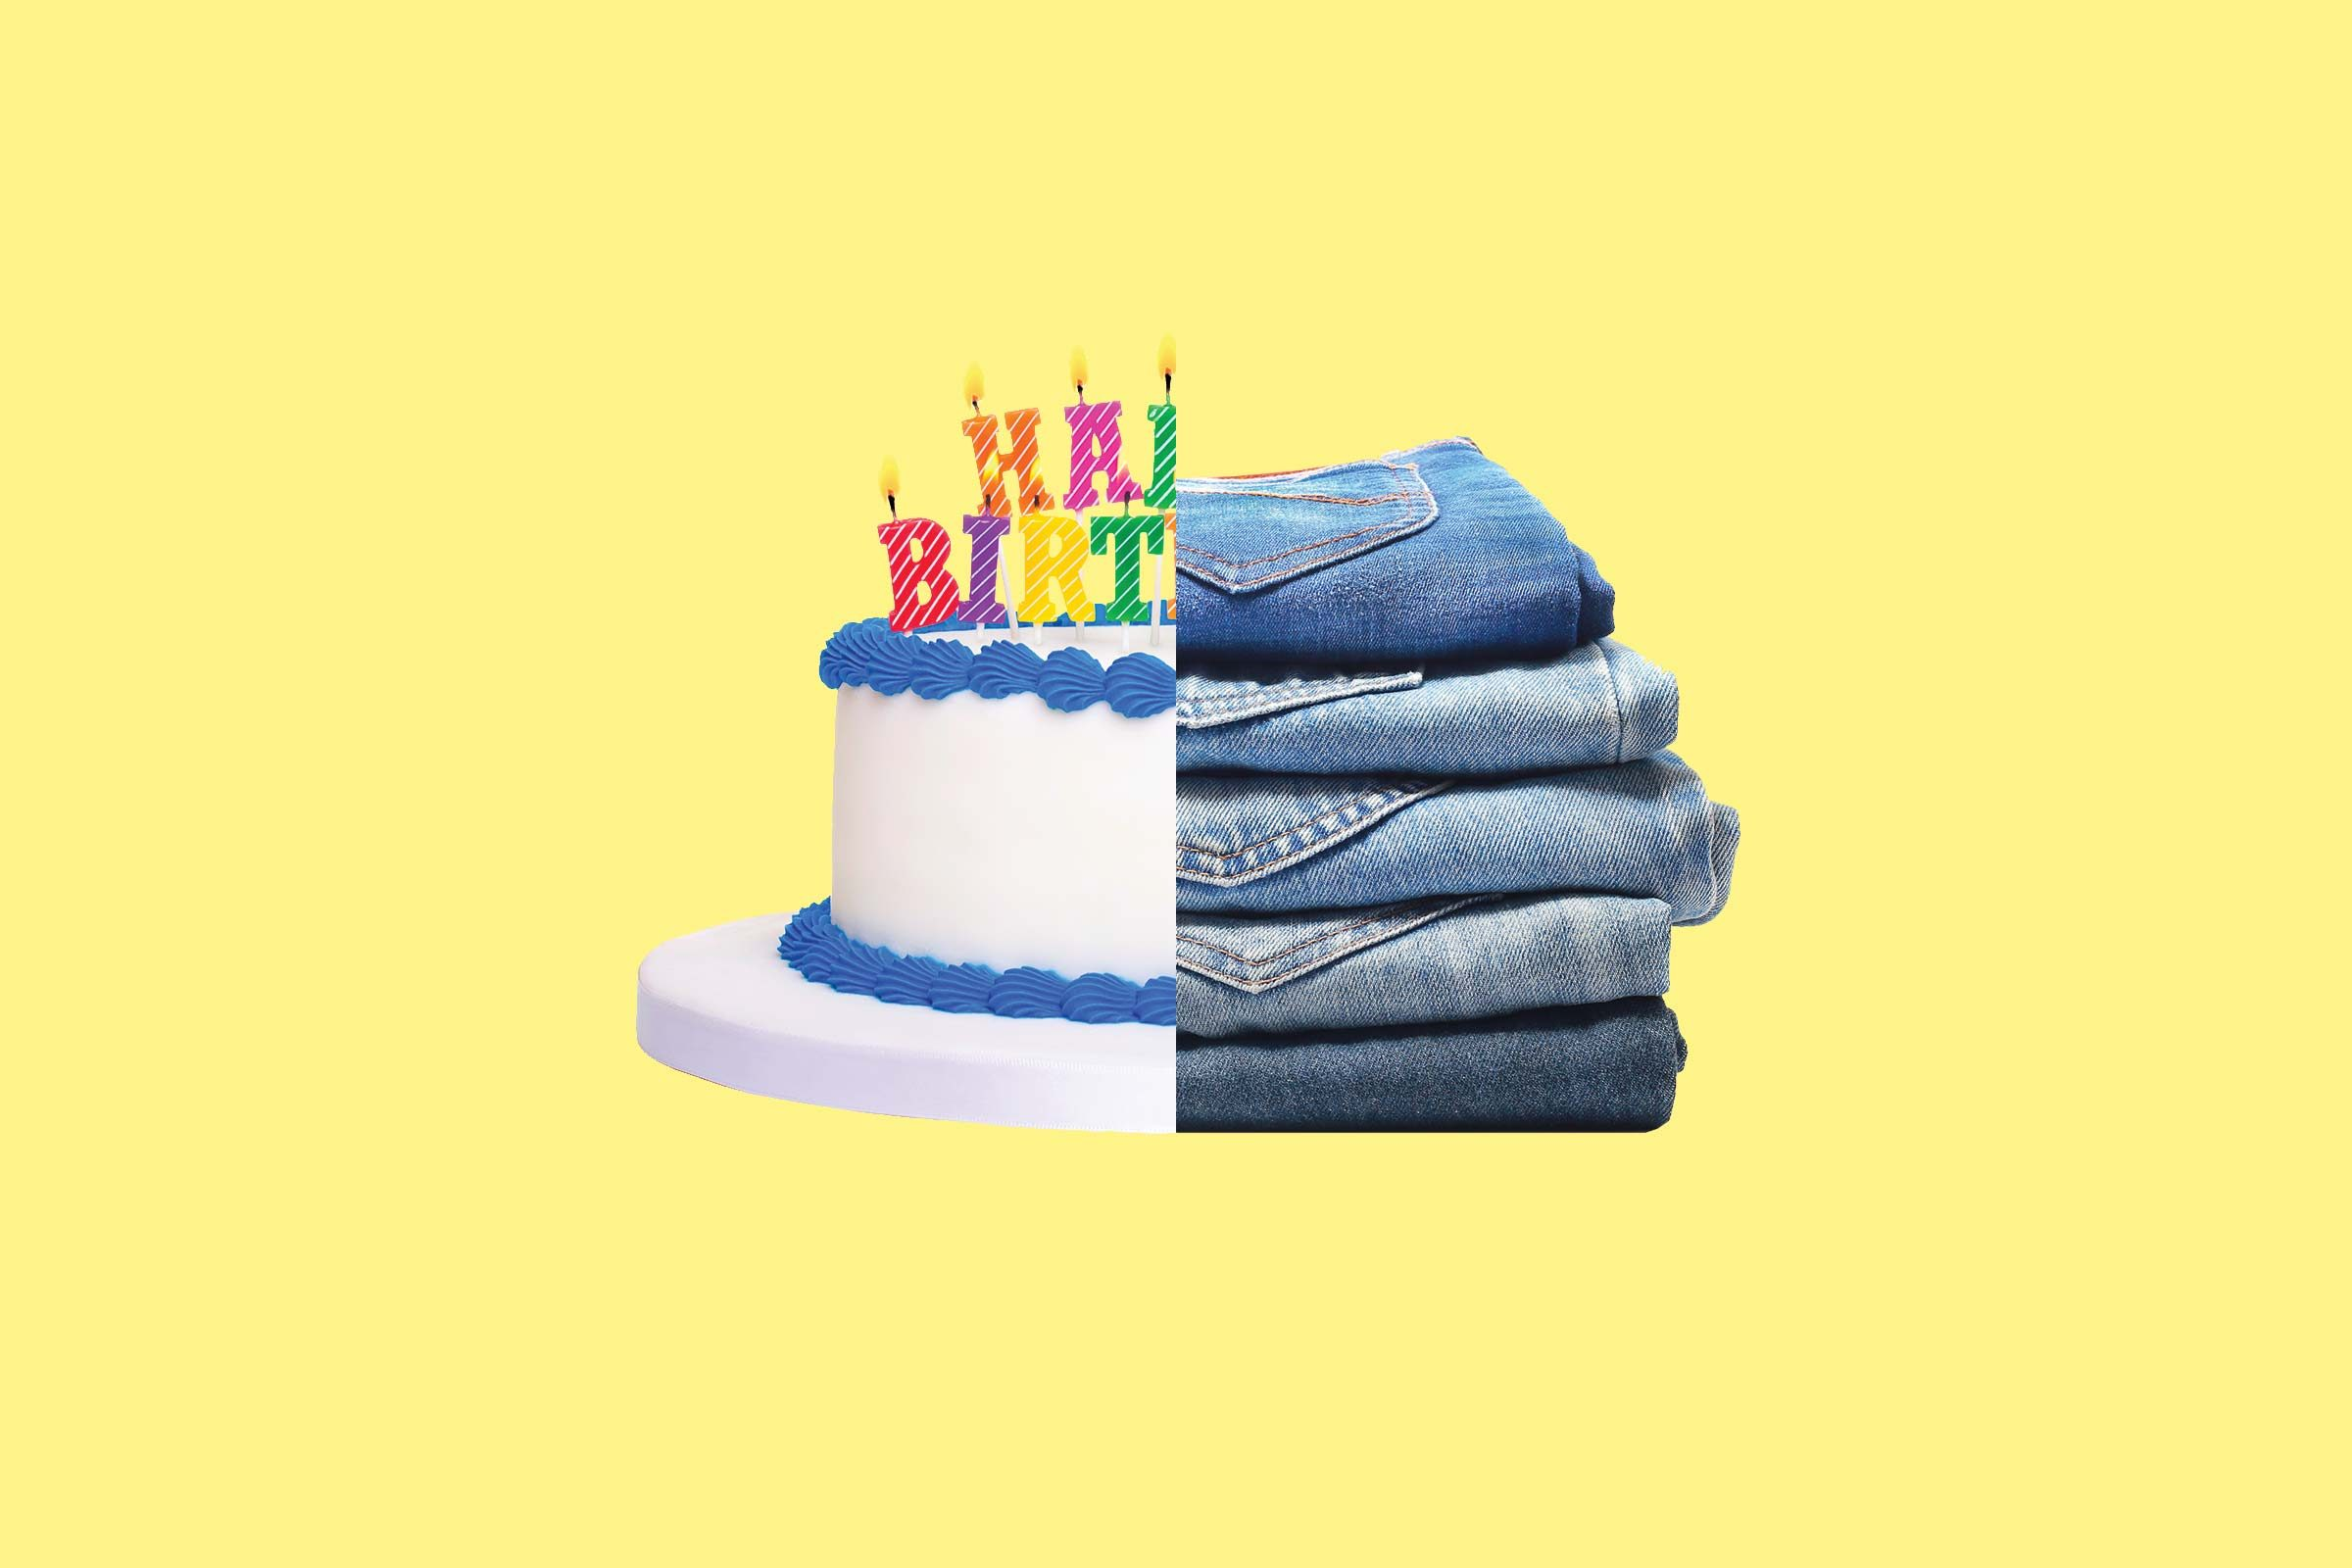 may 20, 1873 is the birthday of blue jeans